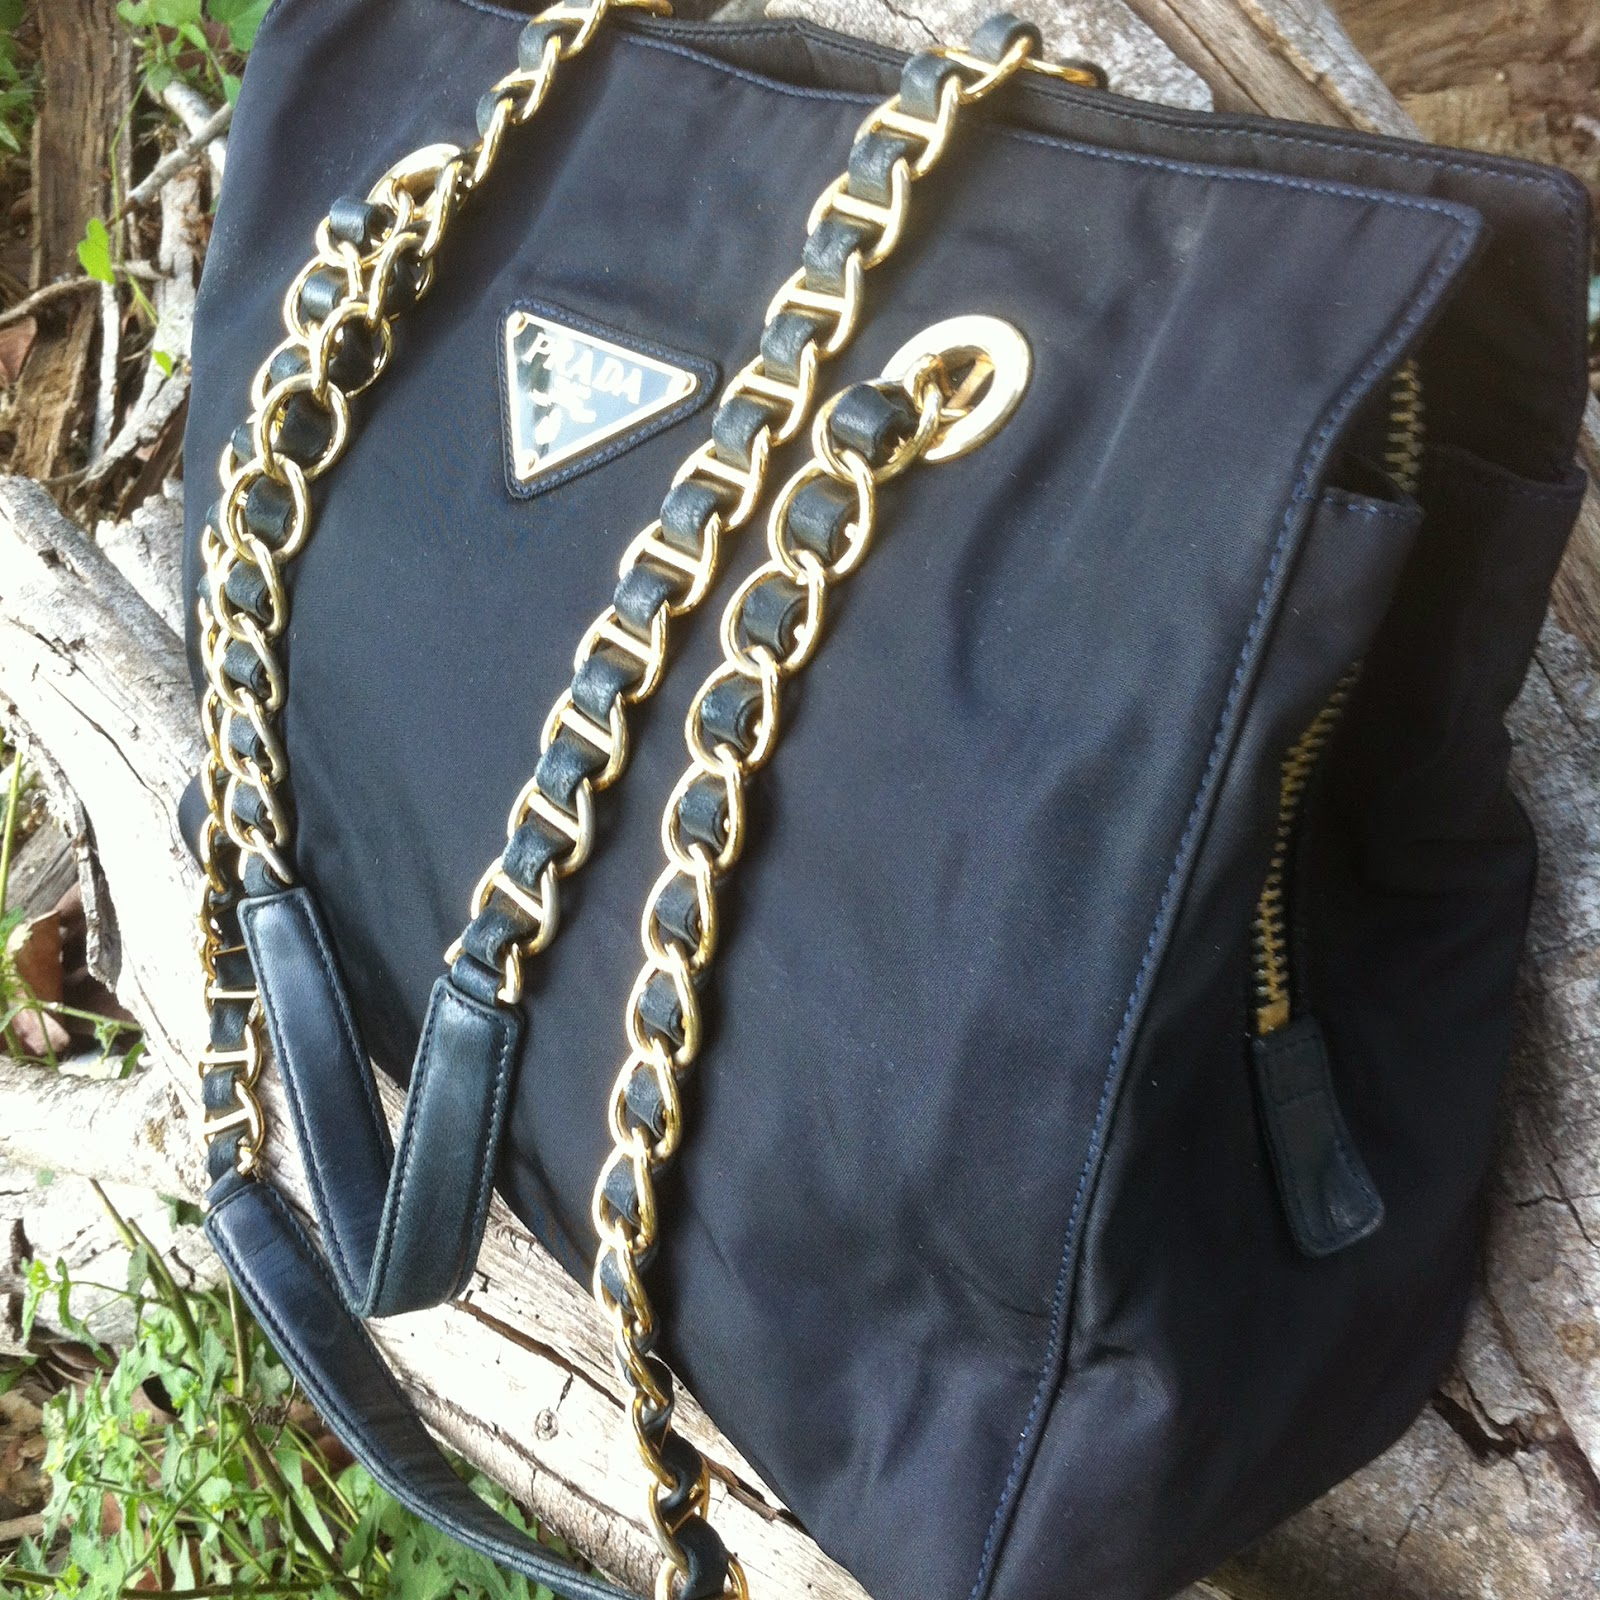 61edf5dfcea8 ... australia prada vintage black tessuto nylon gold chain strap shoulder  bag sold 2a665 717bb